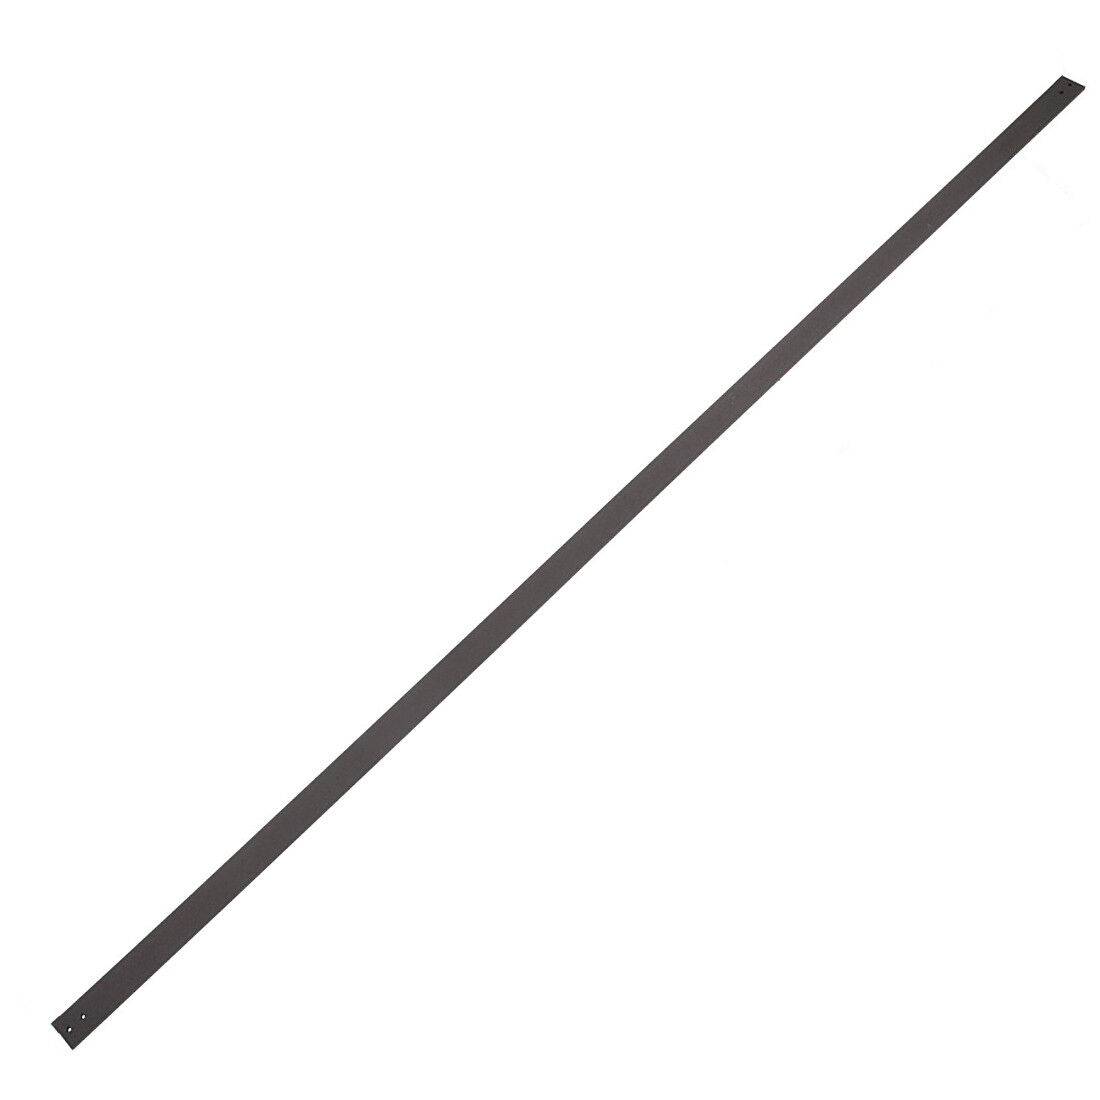 6 FT Steel Sliding Barn Door Flat Rail Track Spare Part No Pre-drilled Holes